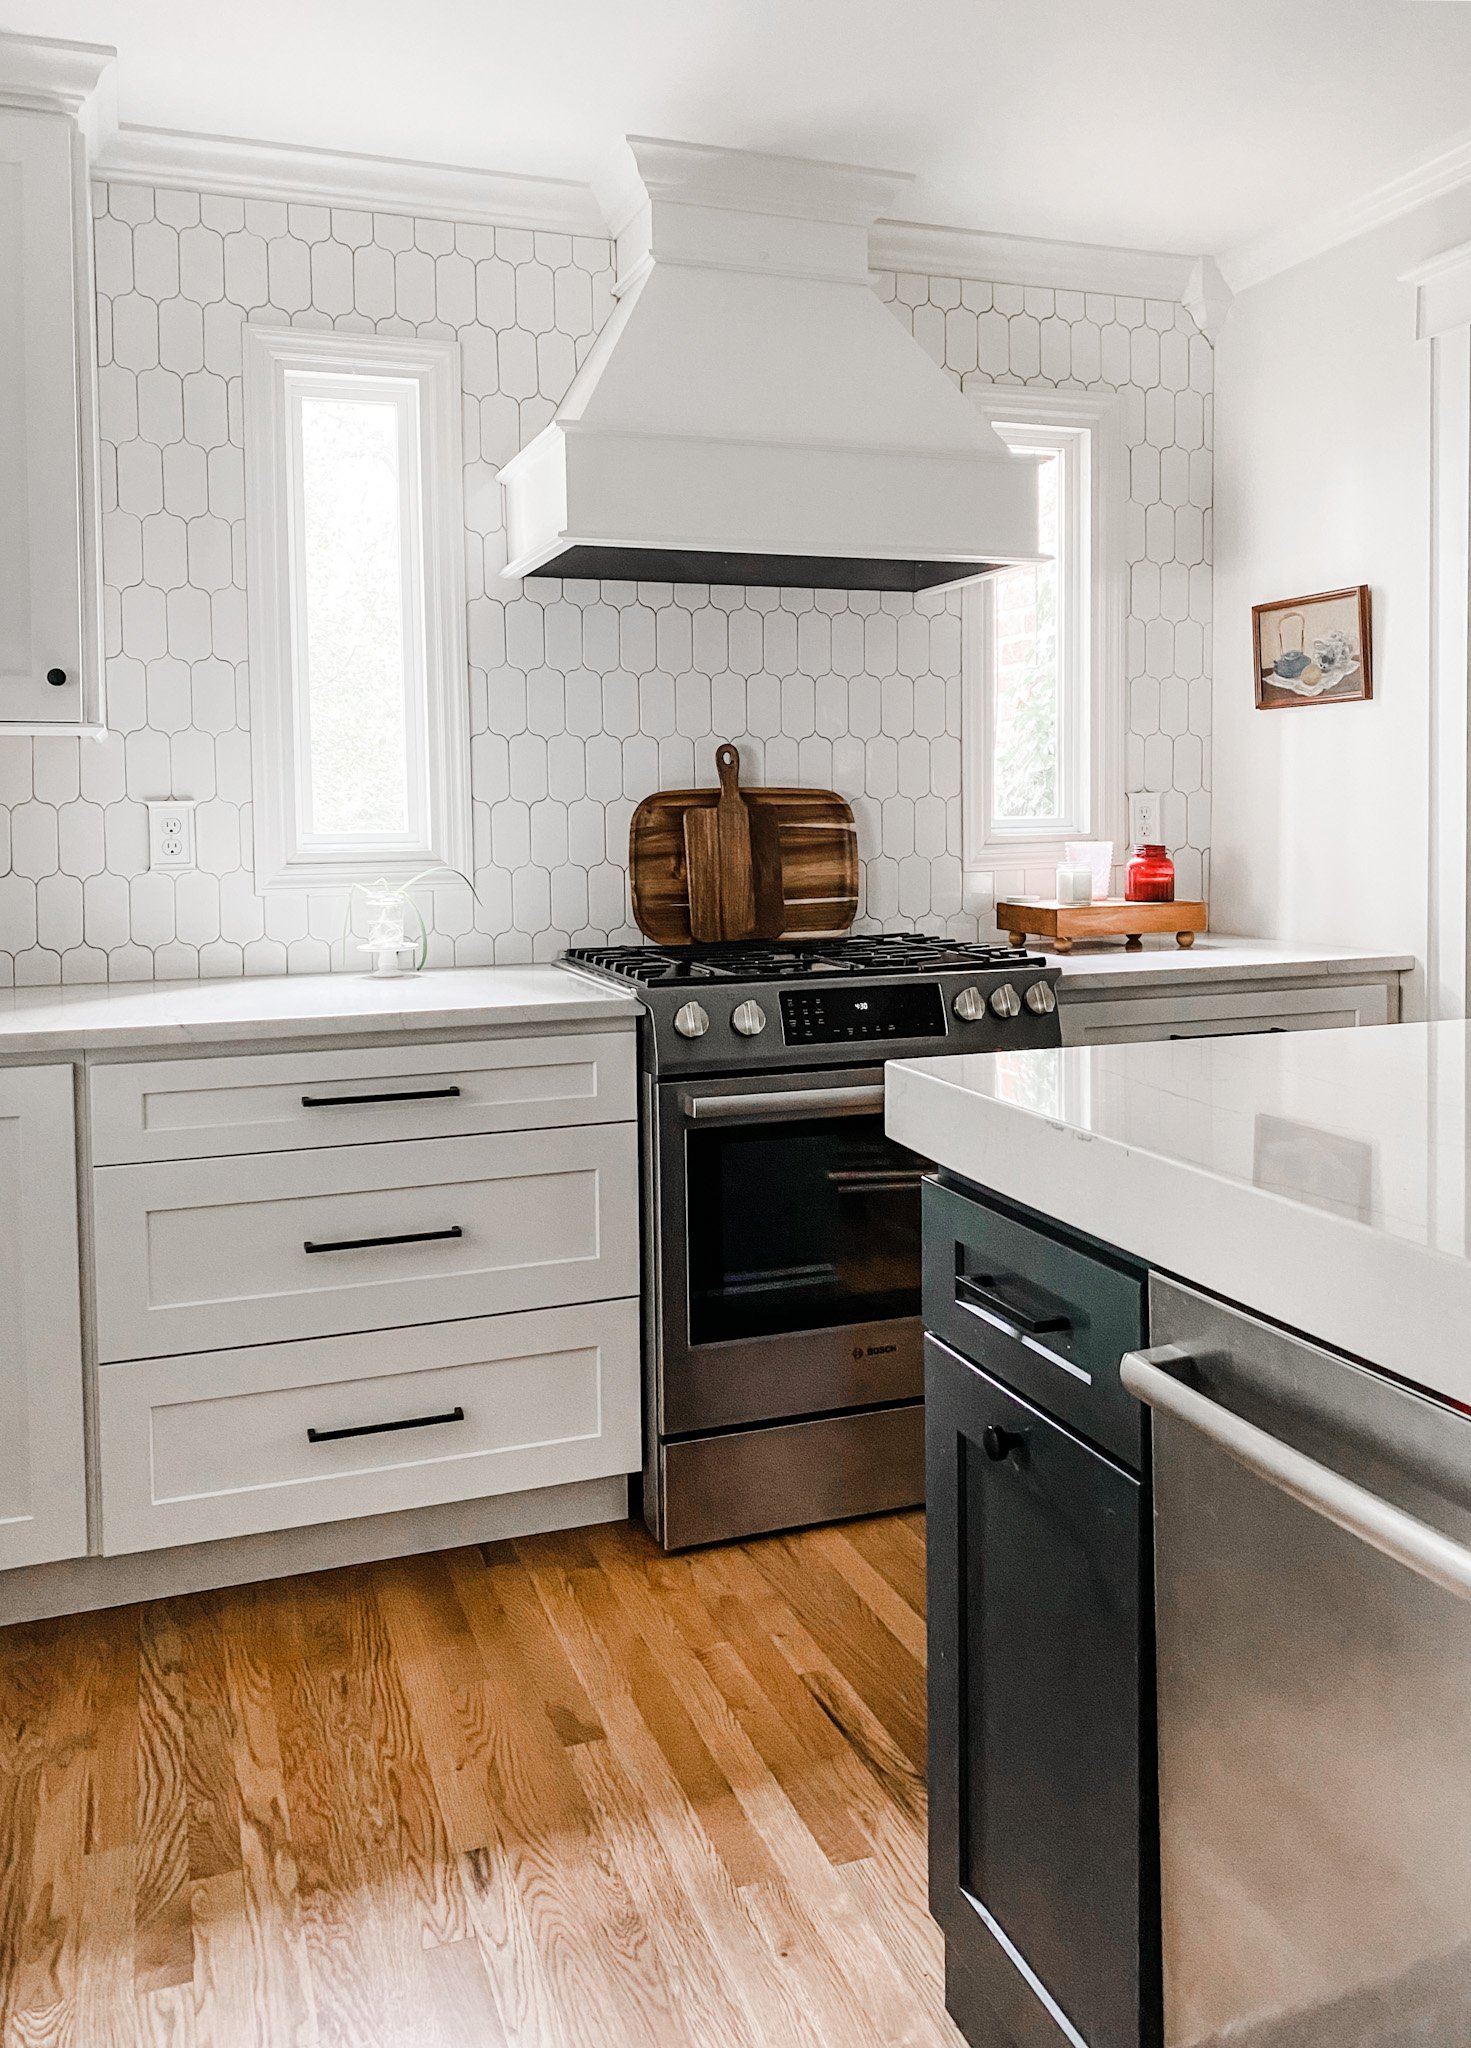 Elle by Cambria mitered counter top